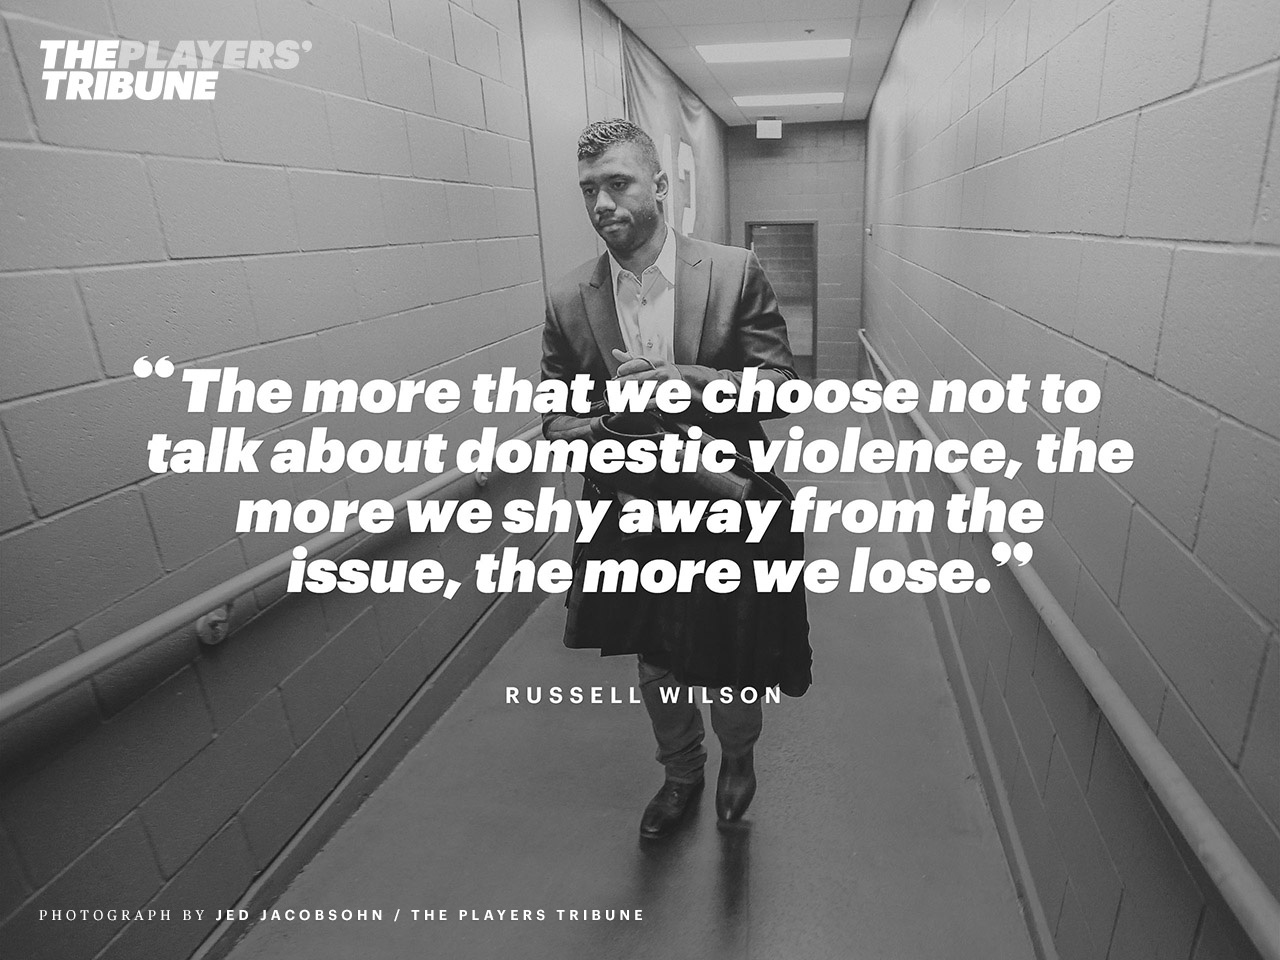 essay on domestic violence against women essay on violence against  let s talk about it the players tribune quote image wilson11 2 essay on violence against women